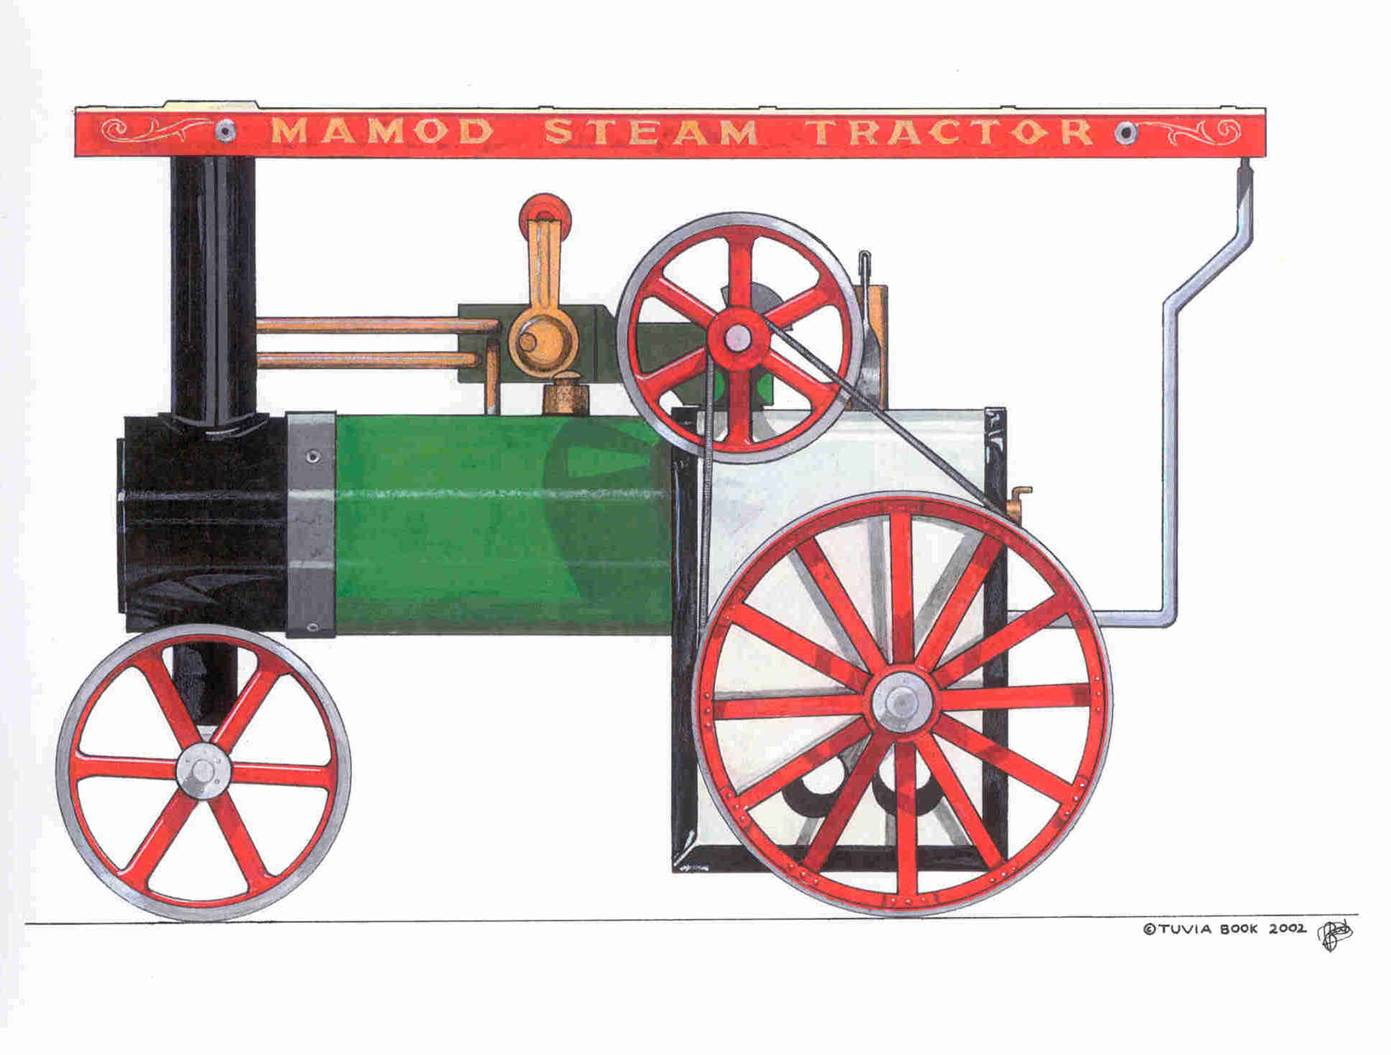 Mamod Steam Tractor Model